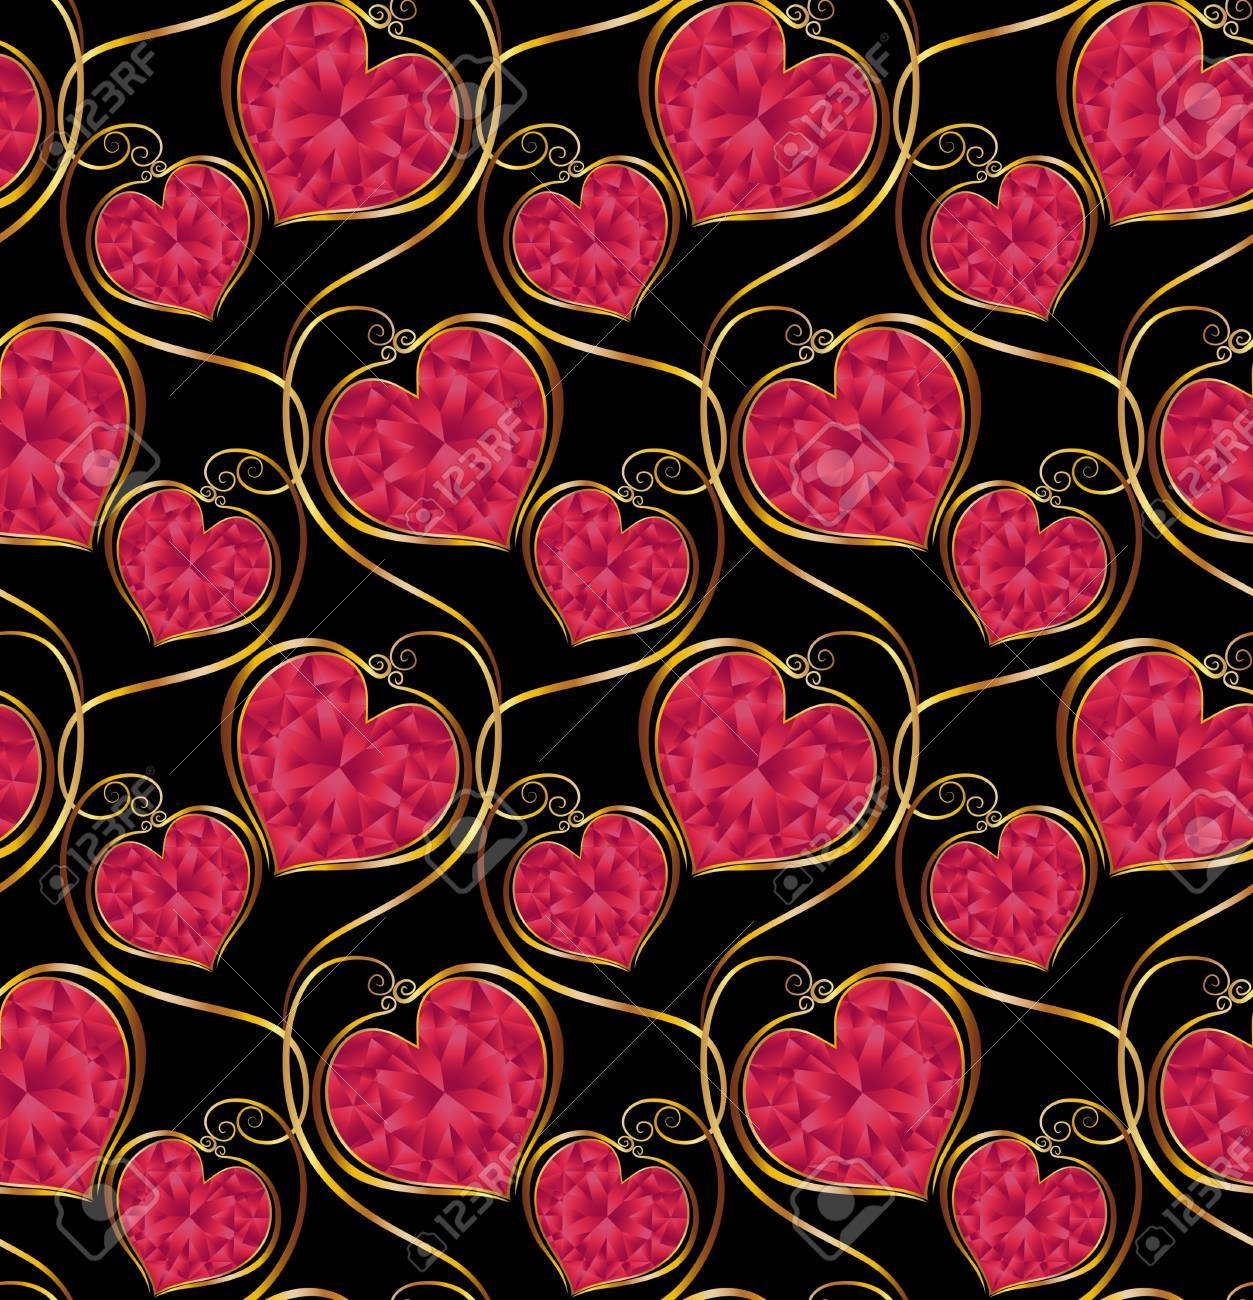 17503568-Seamless-vector-pattern-Red-heart-shaped-diamonds-on-a-black--Stock-Photo